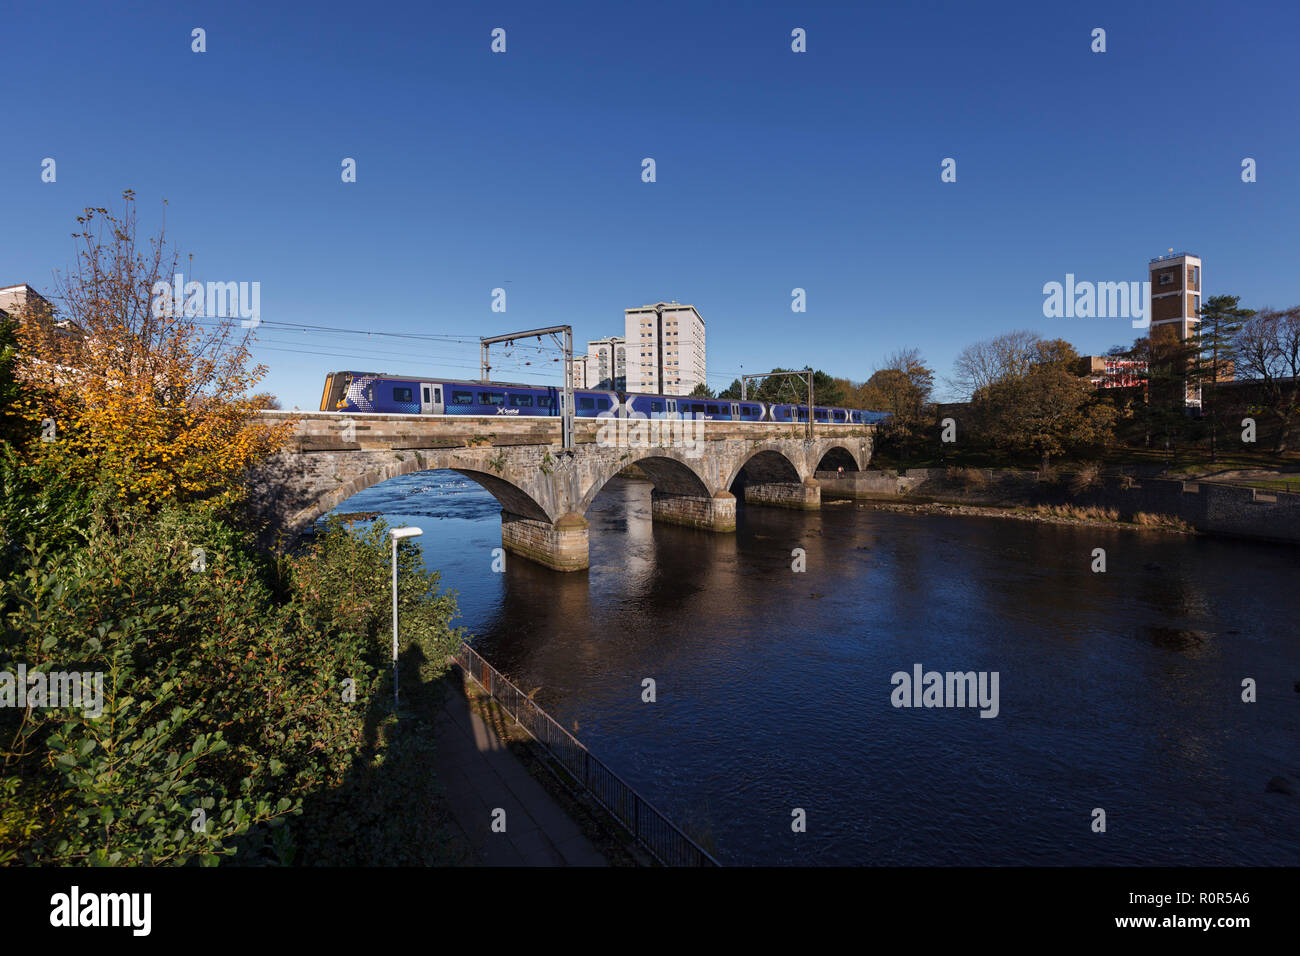 A Scotrail class 380 electric train arriving at Ayr crossing the viaduct over the river Ayr - Stock Image